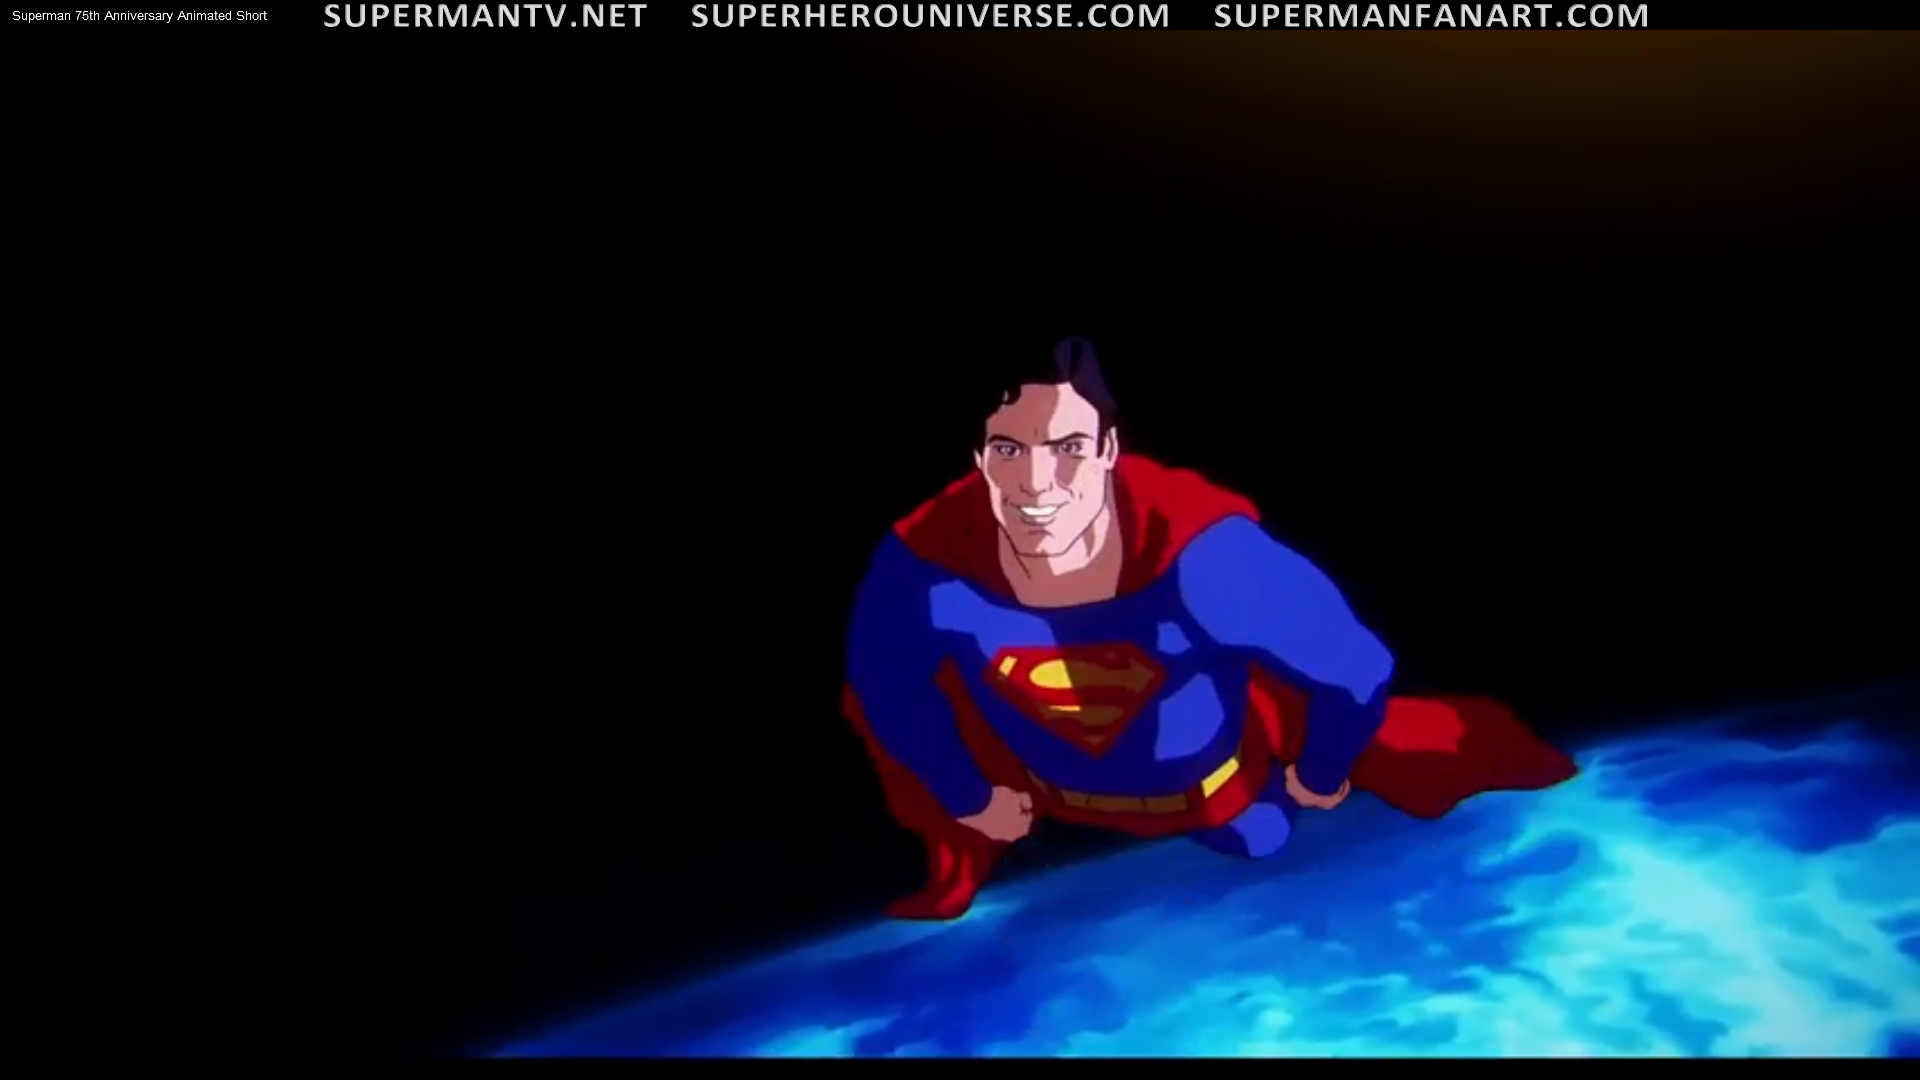 Christopher Reeve 75th Superman Anniversary   Superman Images Gallery 1920x1080